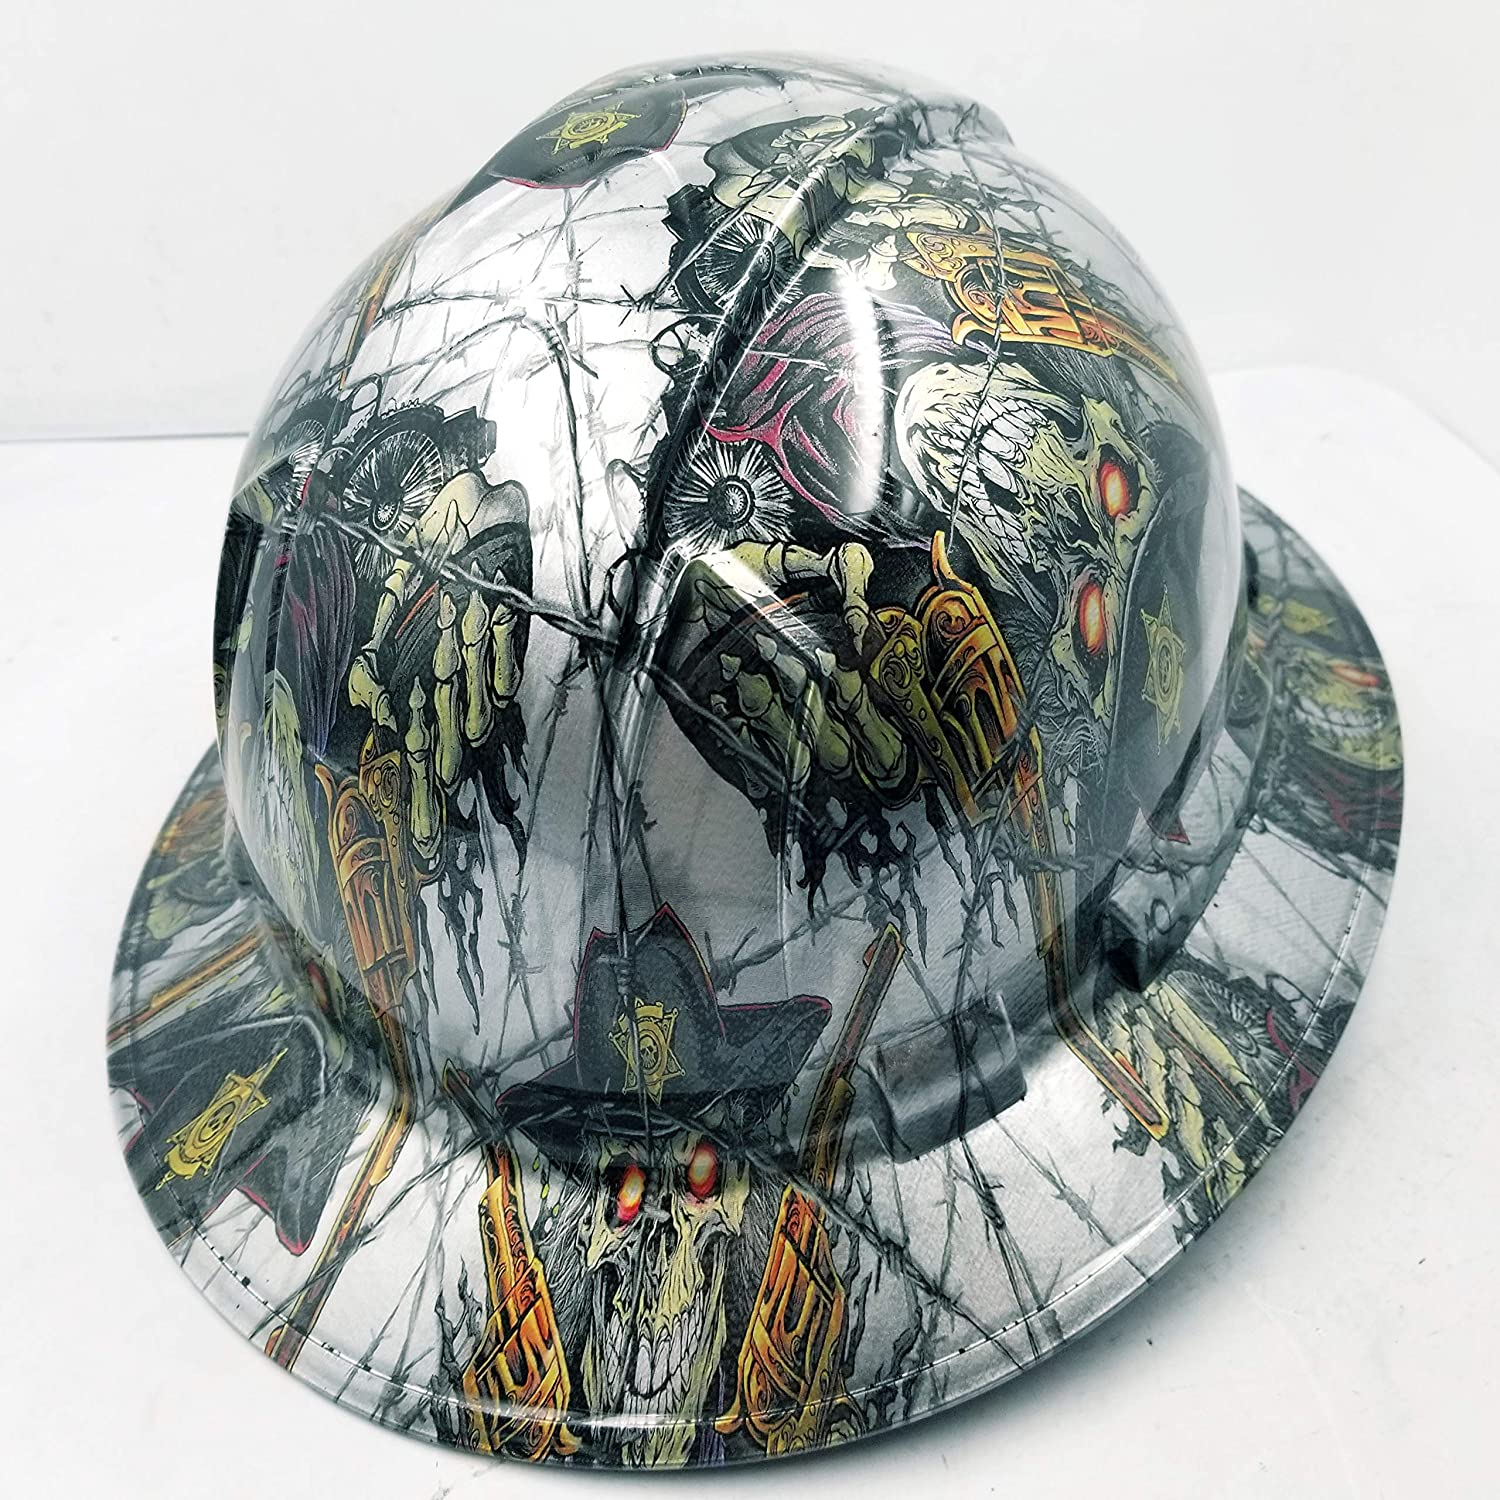 Amazon.com: Wet Works Imaging - Gorro de pirámide ...